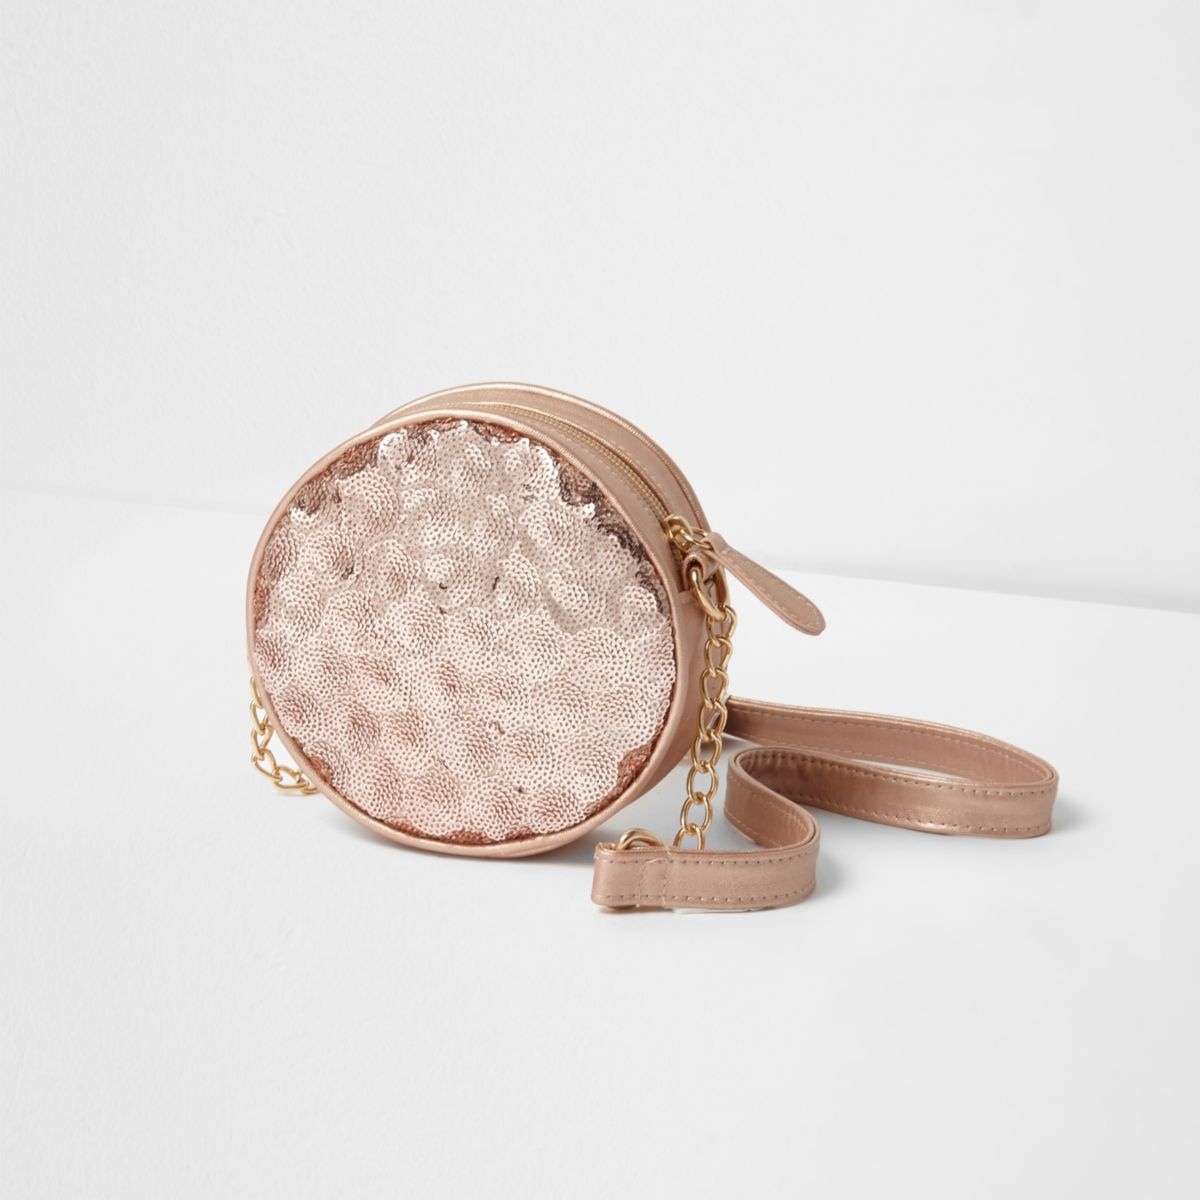 River Island Kids Girls Rose Gold Sequin Round Cross Body Bag